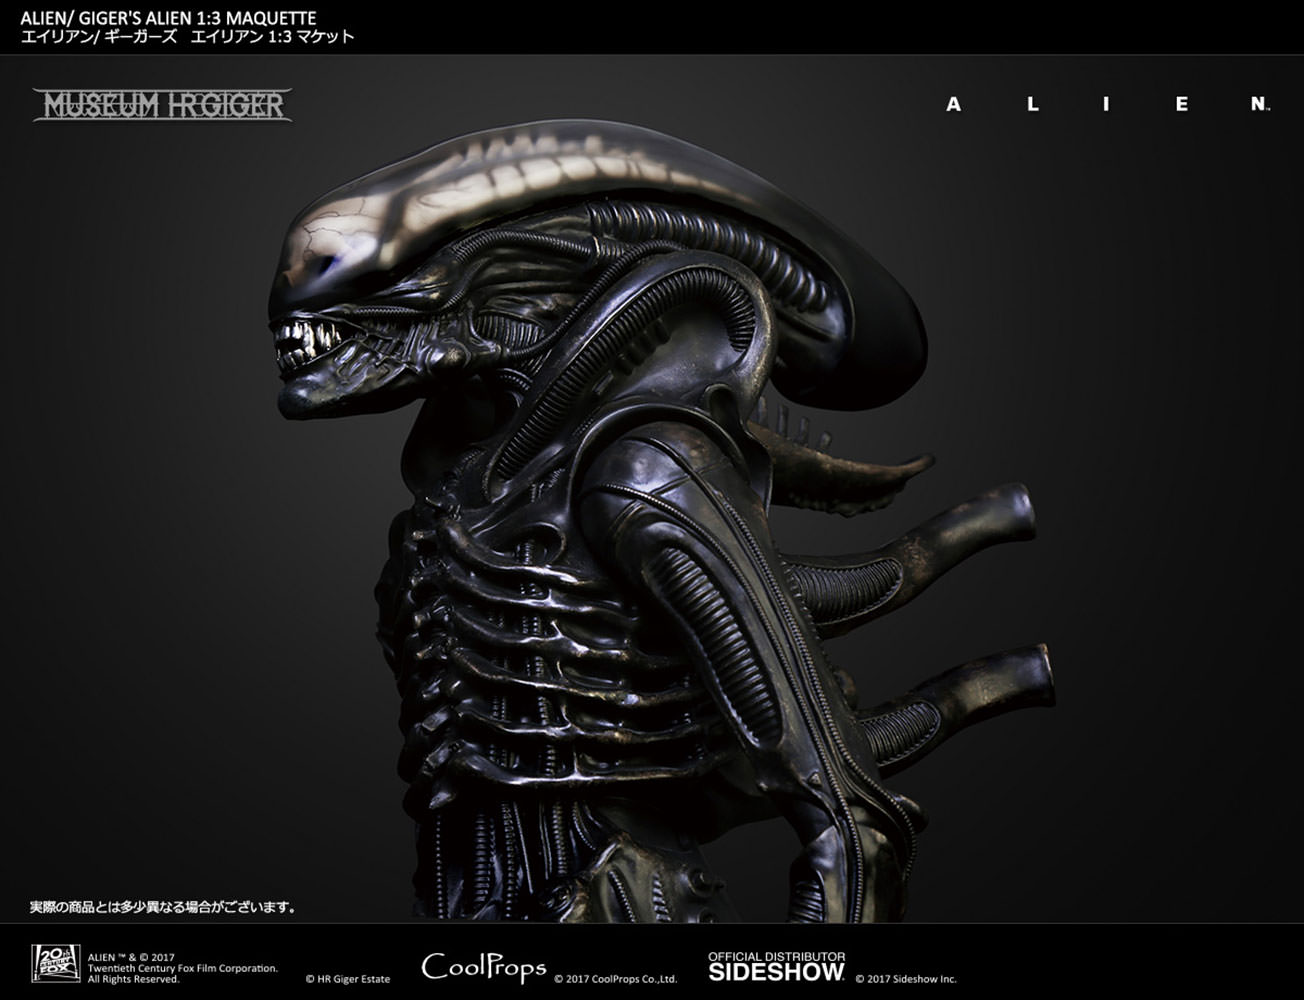 Alien Photo: Alien Gigers Alien Maquette By CoolProps